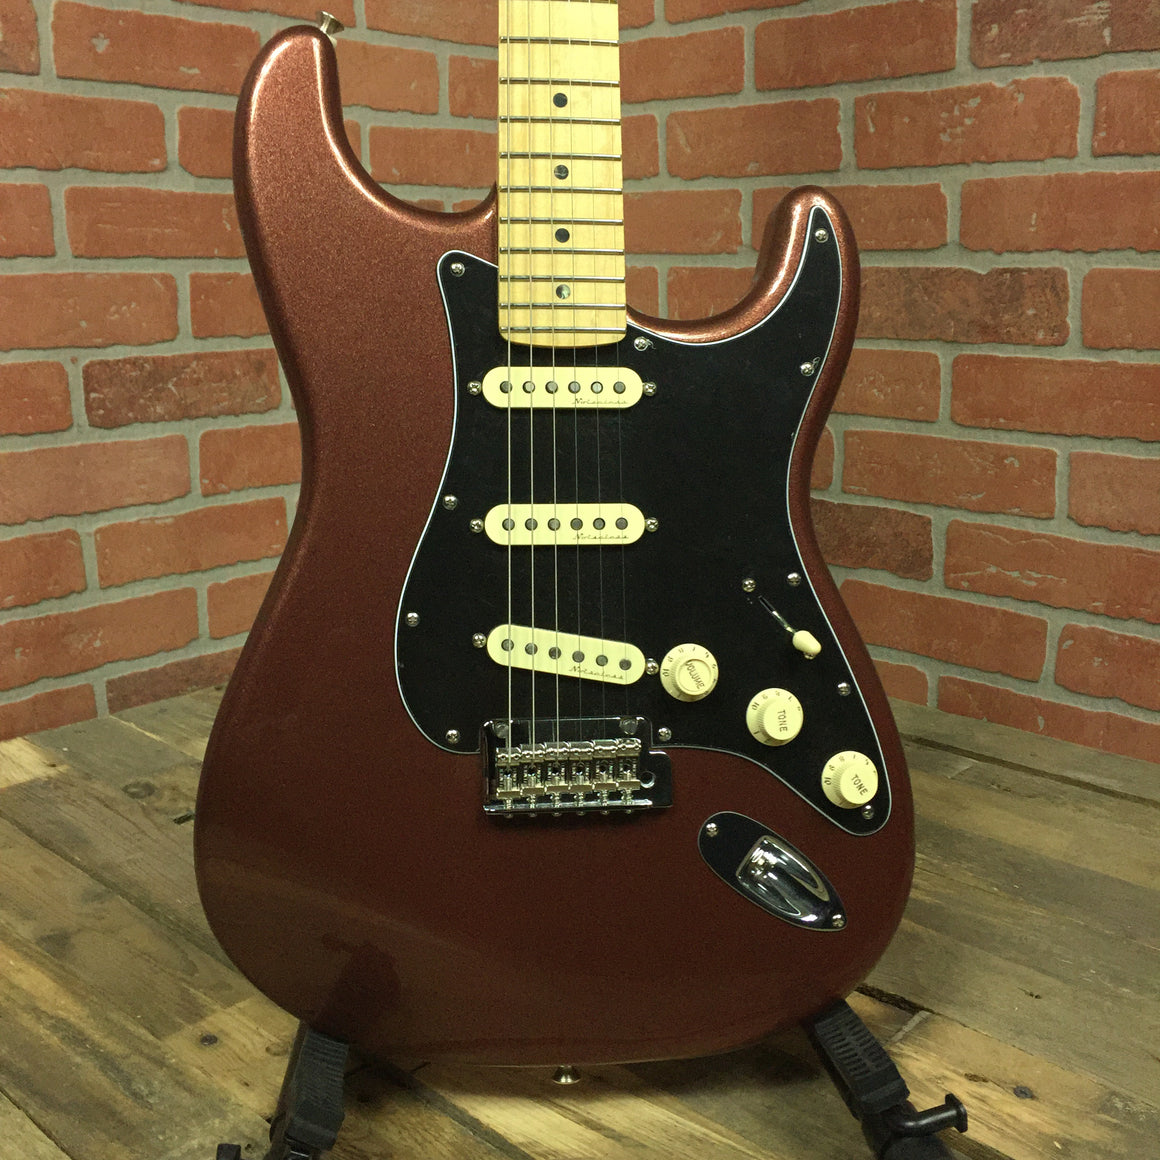 Deluxe Roadhouse Stratocaster, Maple Fingerboard, Classic Copper